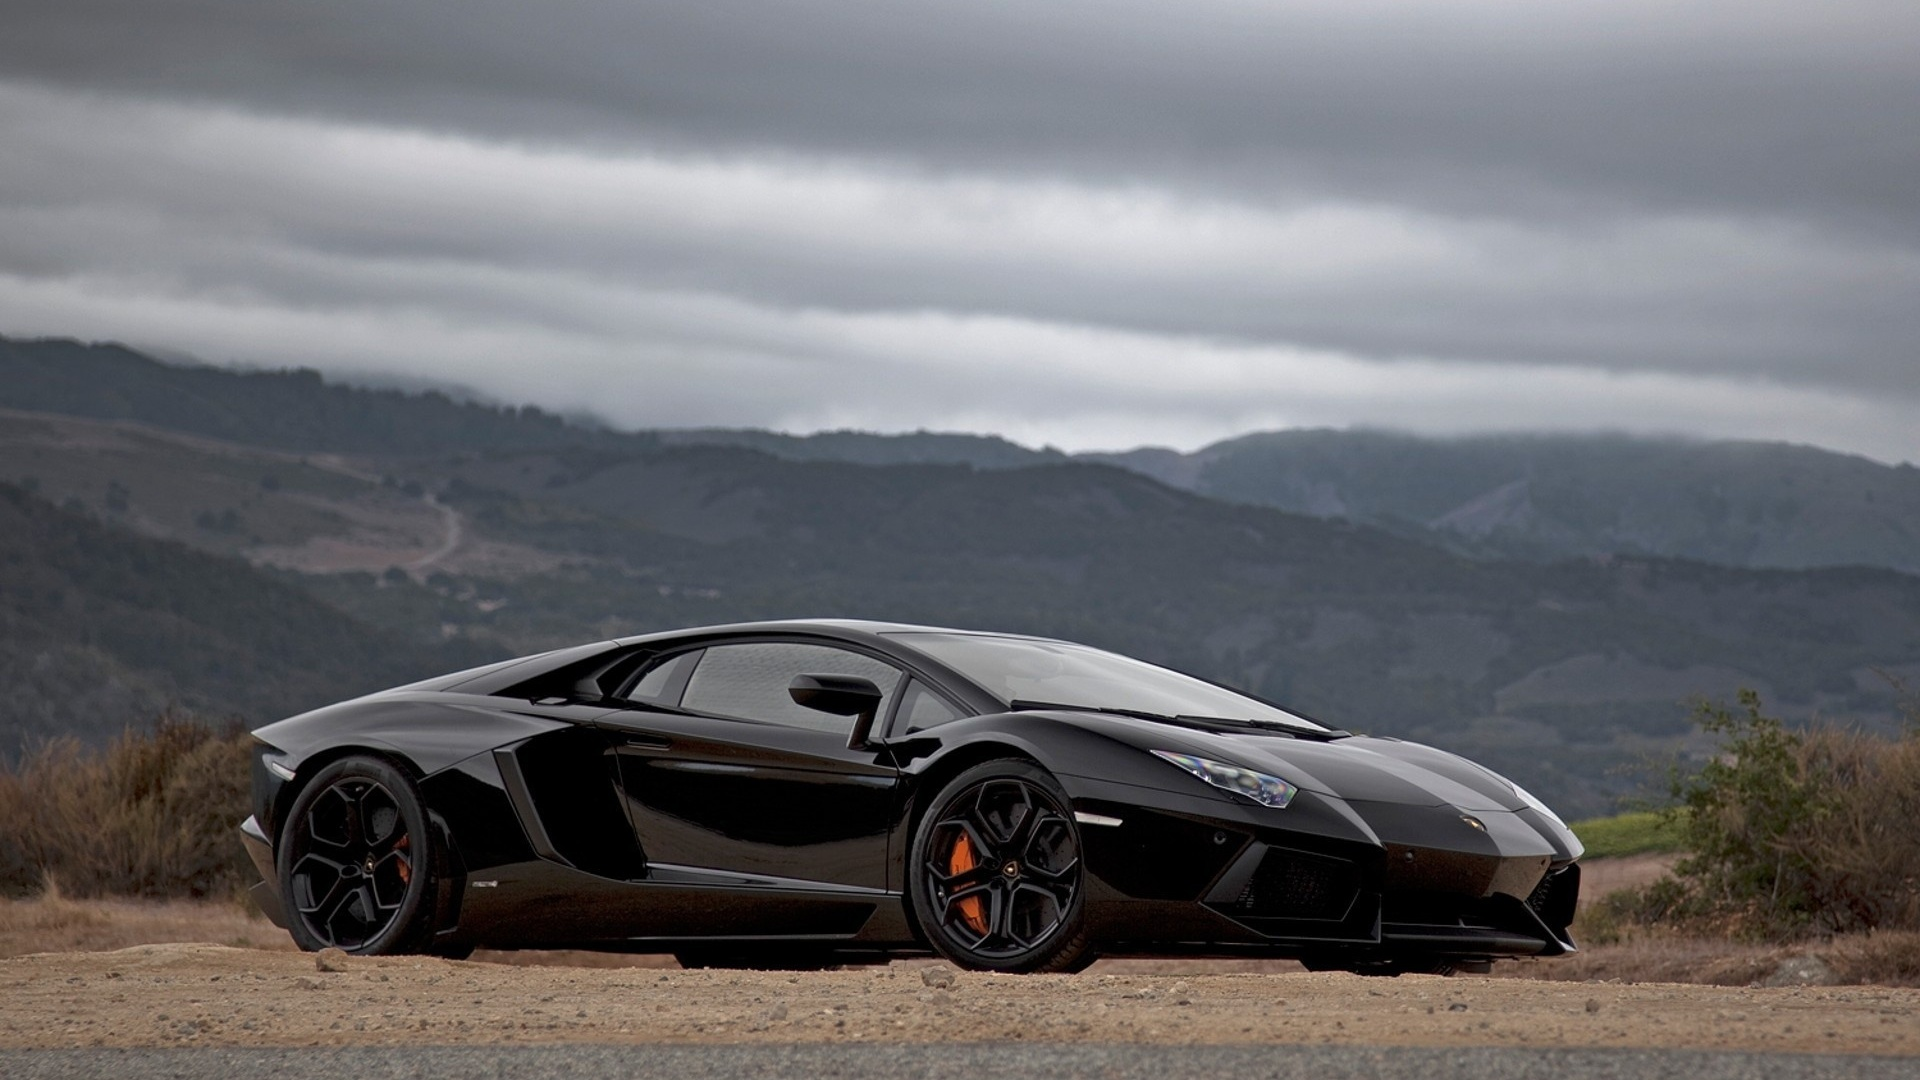 Lamborghini Aventador Hd 1080p I7 wallpaper